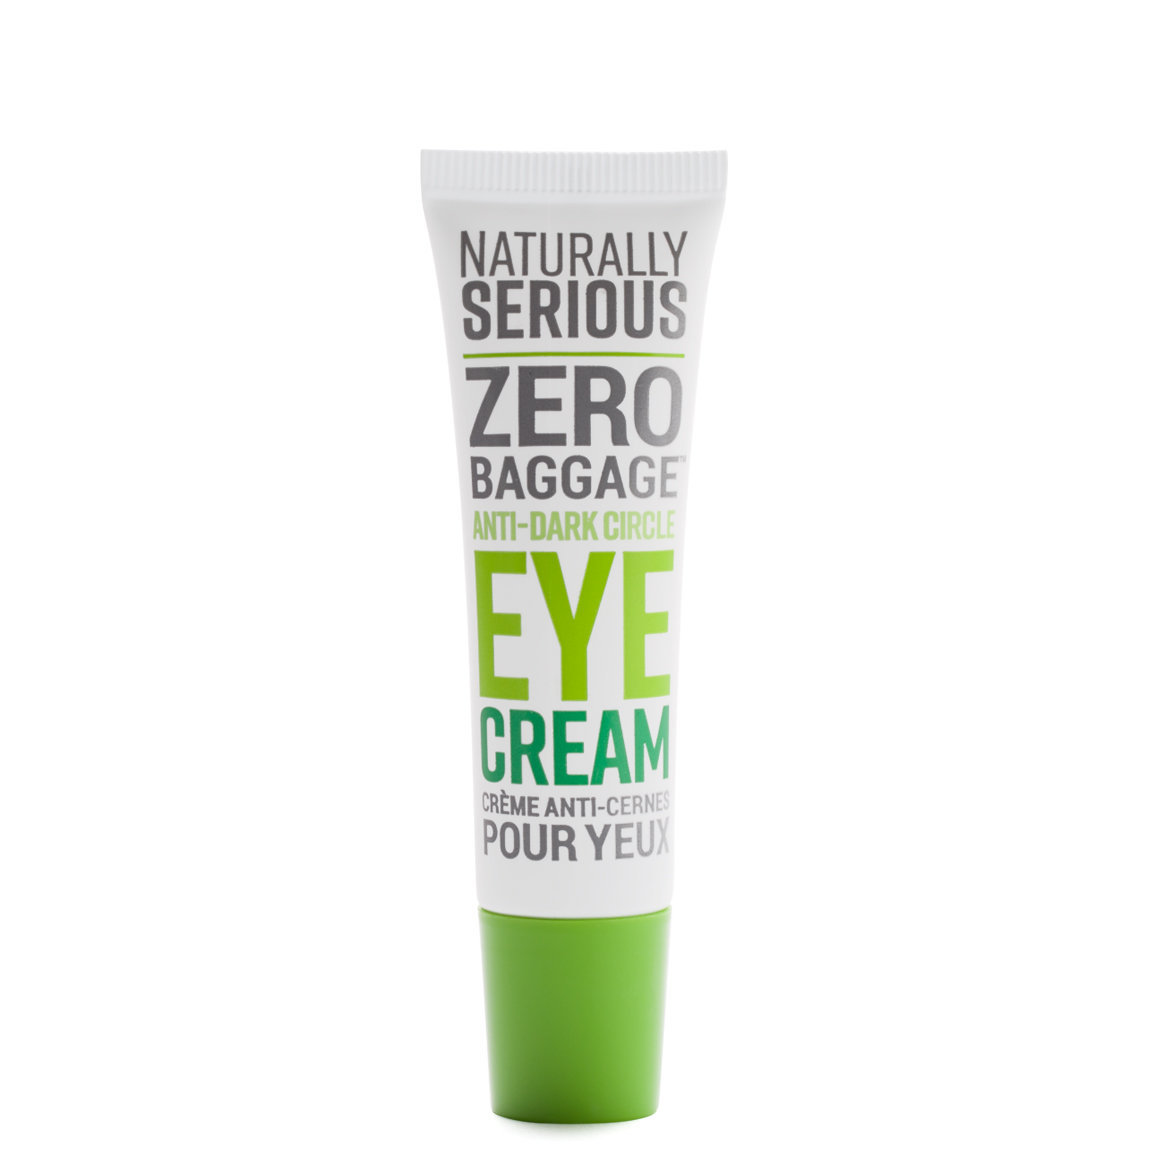 Naturally Serious Zero Baggage Anti-Dark Circle Eye Cream alternative view 1 - product swatch.